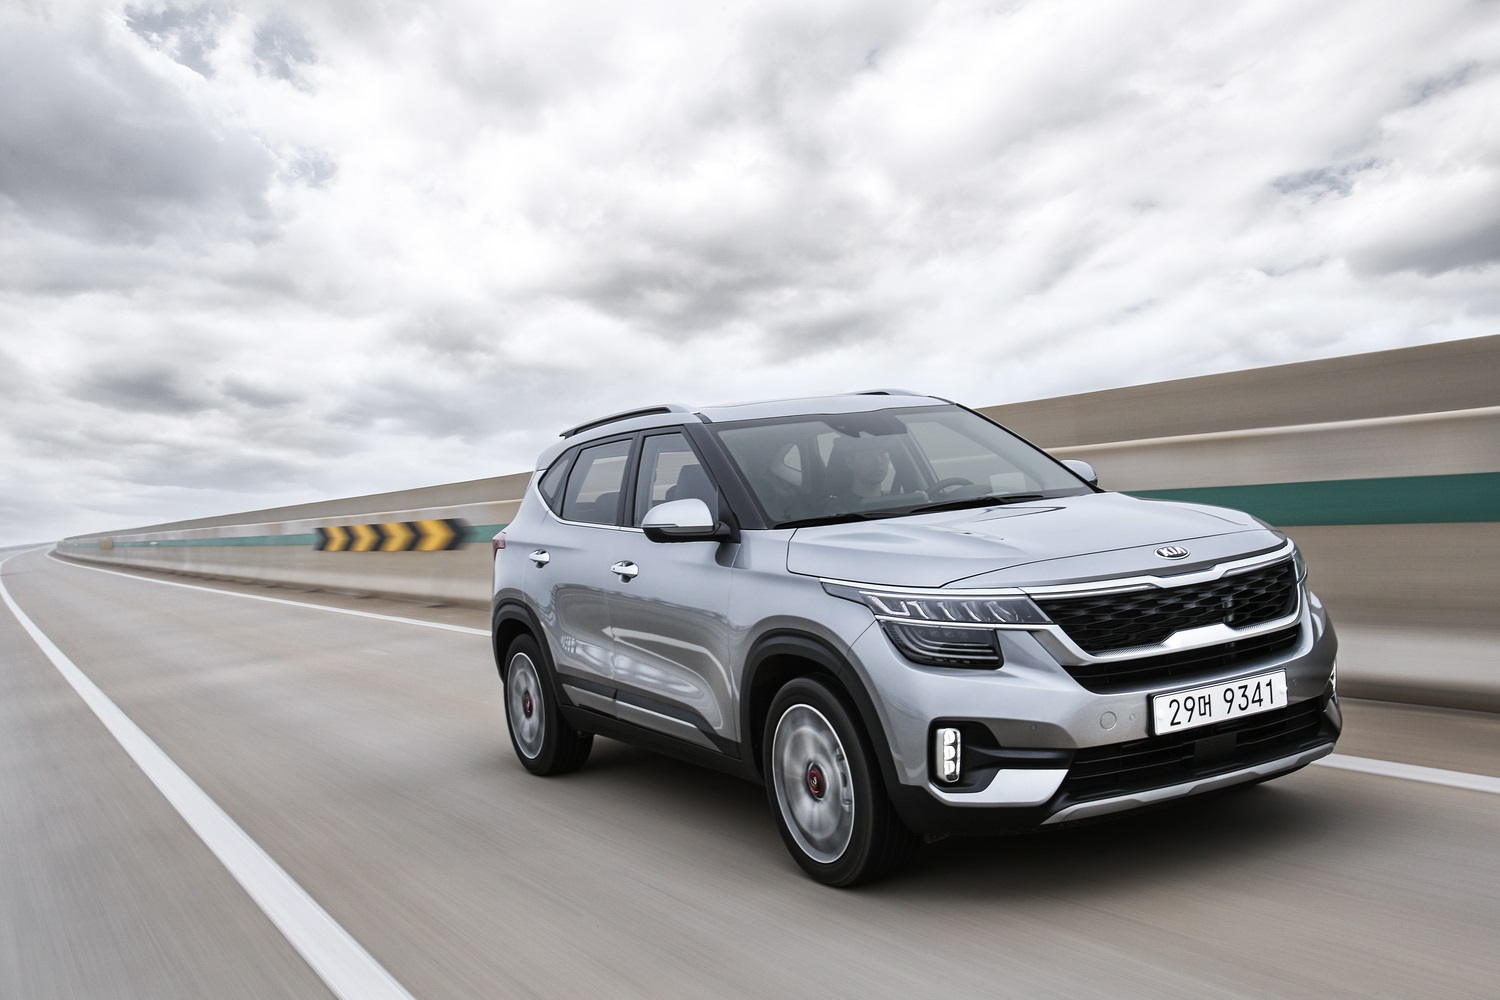 Kia enters the compact SUV market with the very good looking Seltos model.